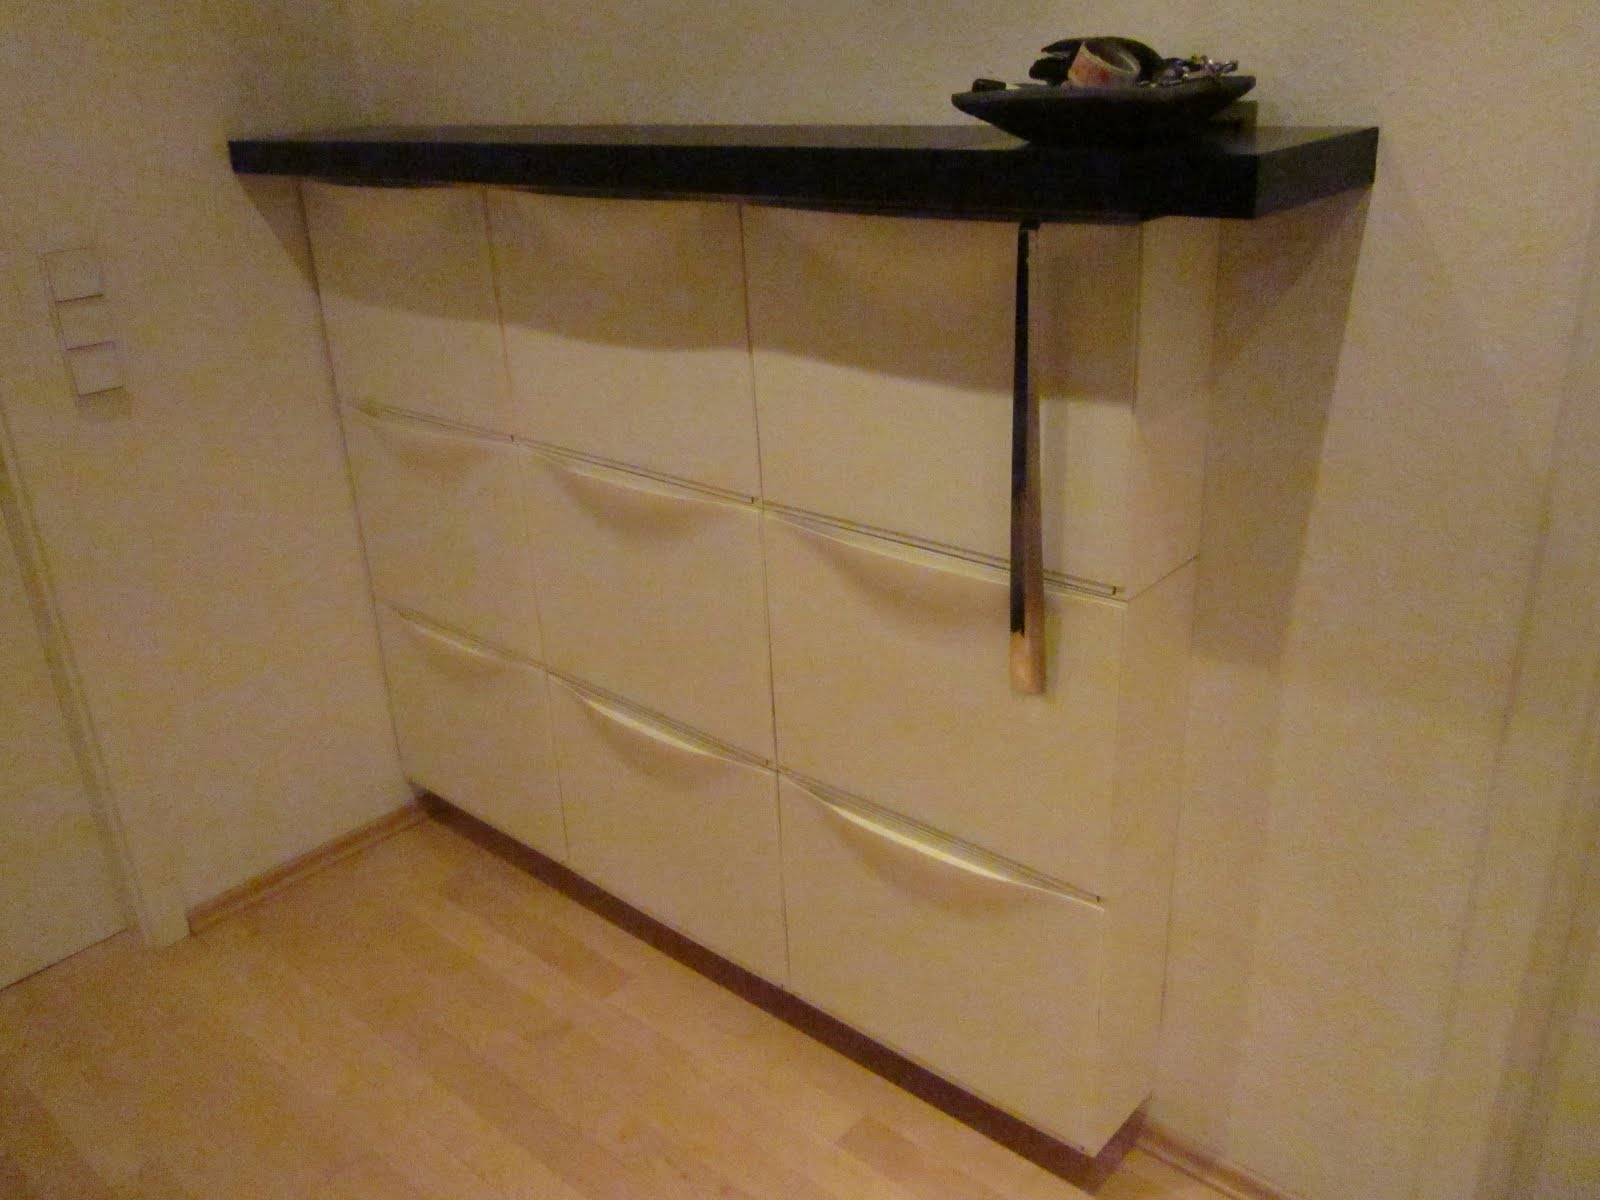 Exceptionnel Materials: 3 Sets Of Trones Shoe Boxes, 2 Lack 30cm Shelves, 1 Lack 110cm  Shelf, About 2,5m Wooden Latches